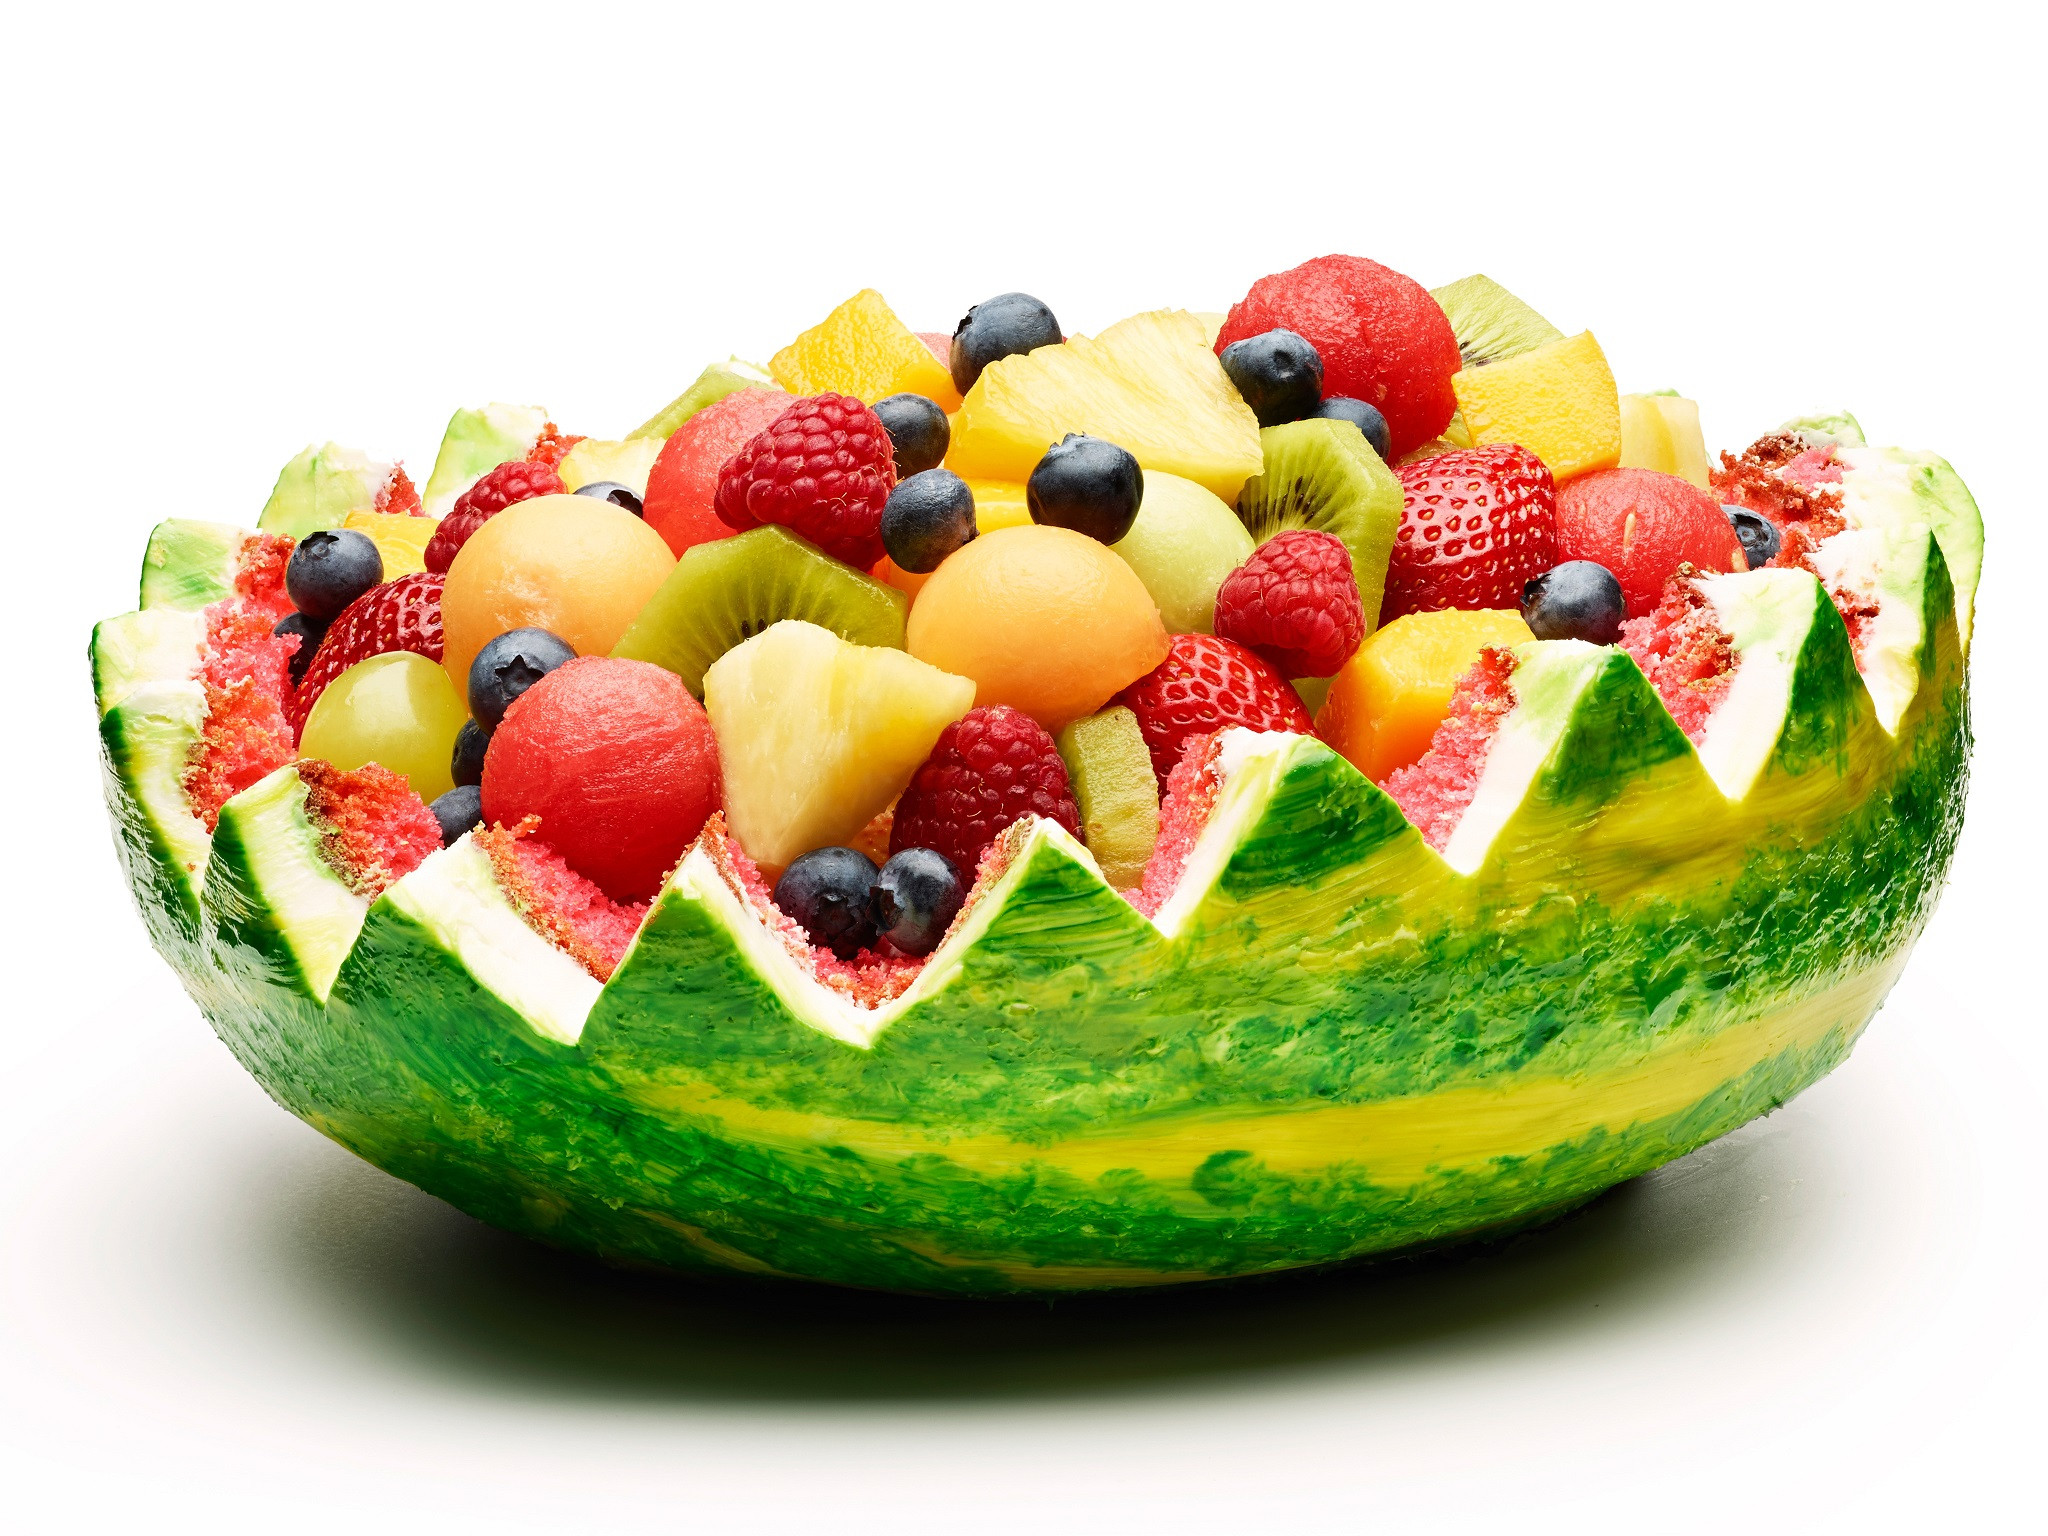 Fruit Desserts Healthy  Healthy Desserts For Outdoor Entertaining